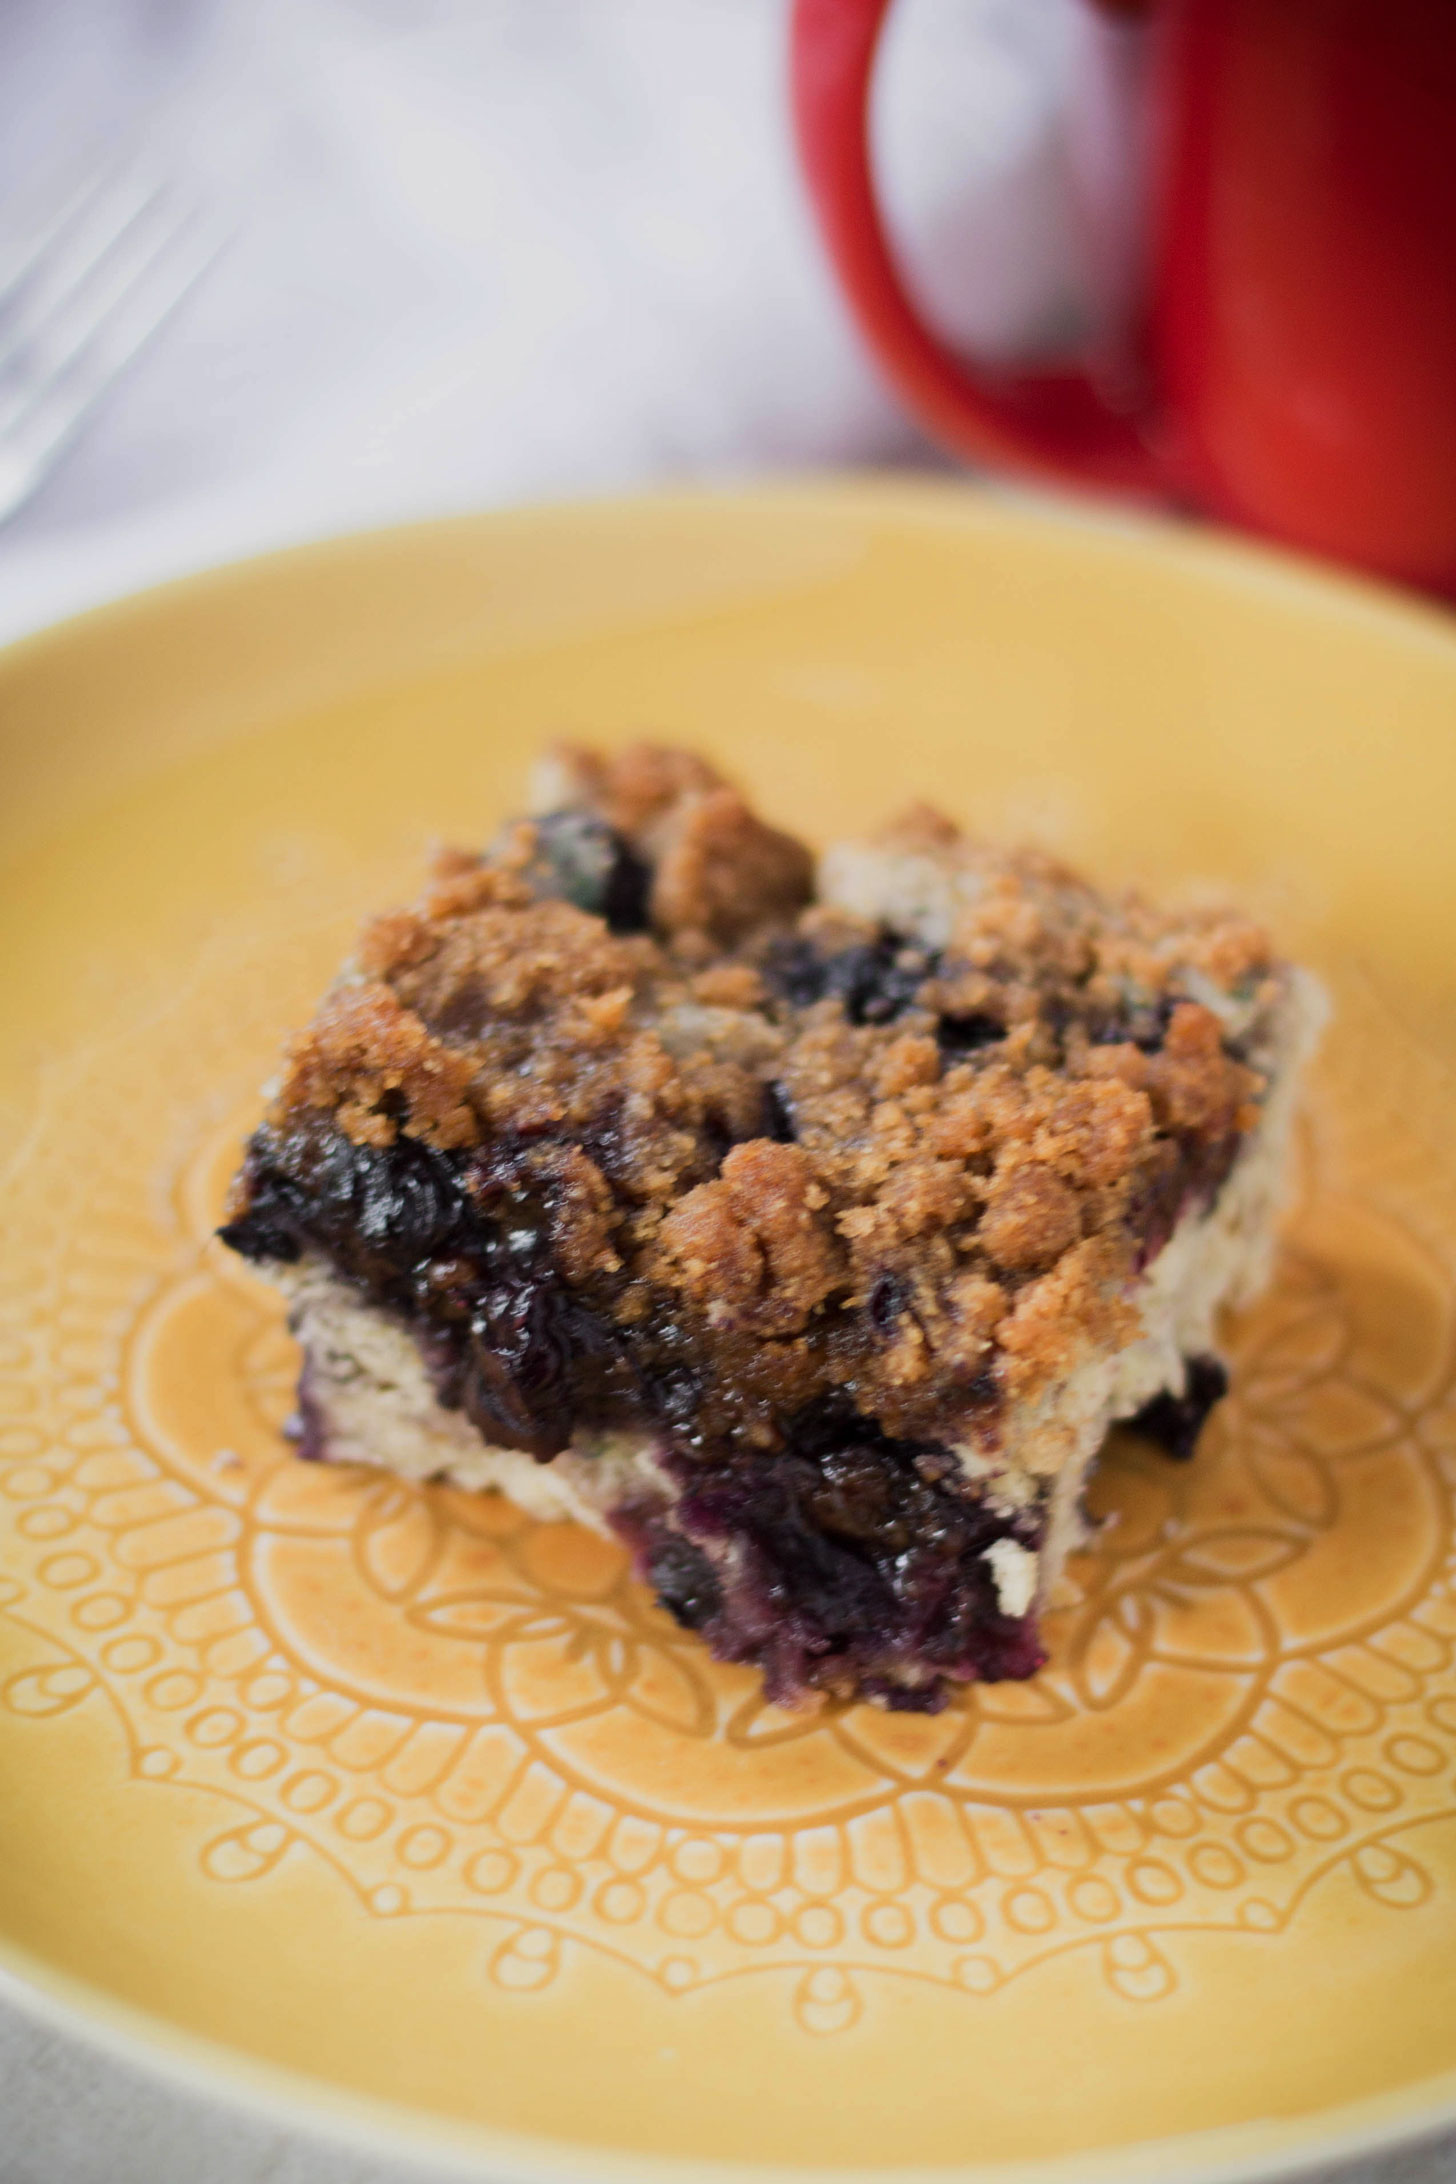 Close up of a piece of vegan blueberry coffee cake on a yellow plate with a red coffee cup in the background.